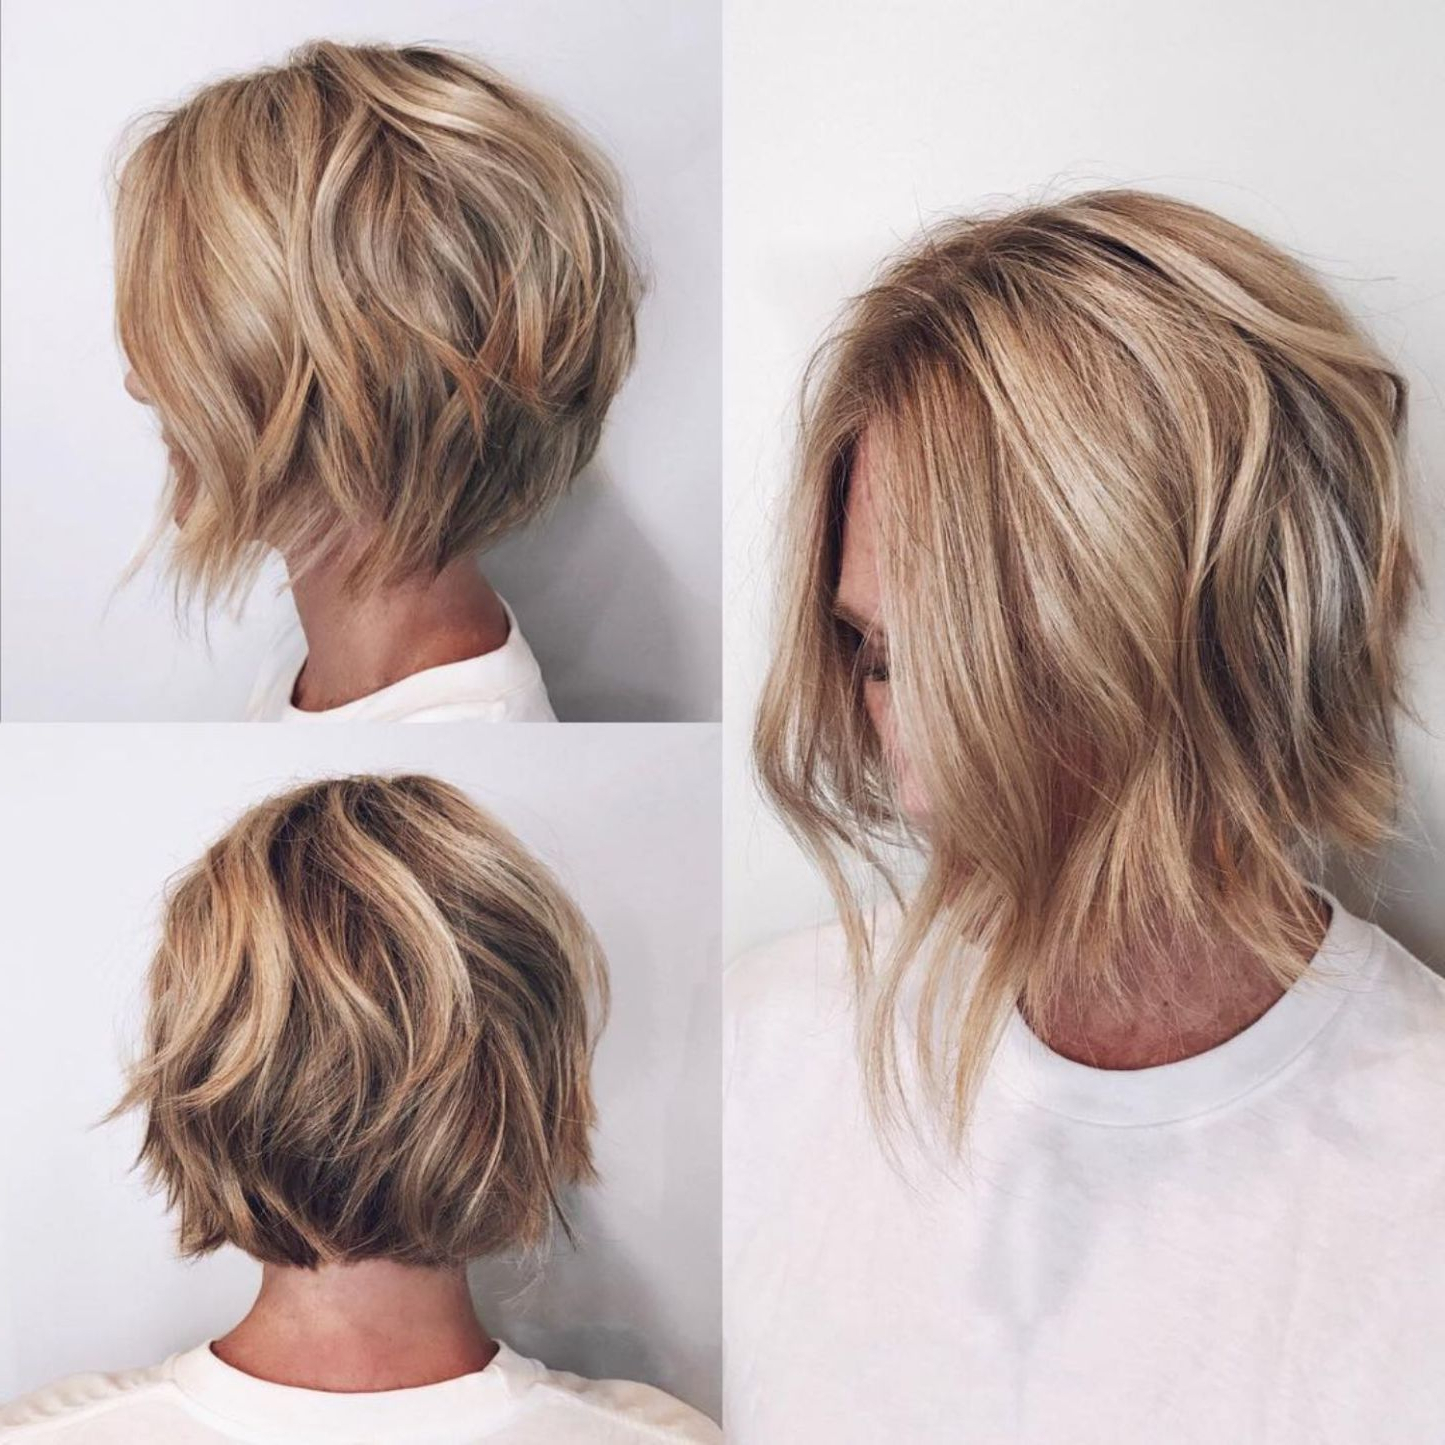 60 Layered Bob Styles: Modern Haircuts With Layers For Any Regarding Inverted Caramel Bob Hairstyles With Wavy Layers (View 15 of 20)